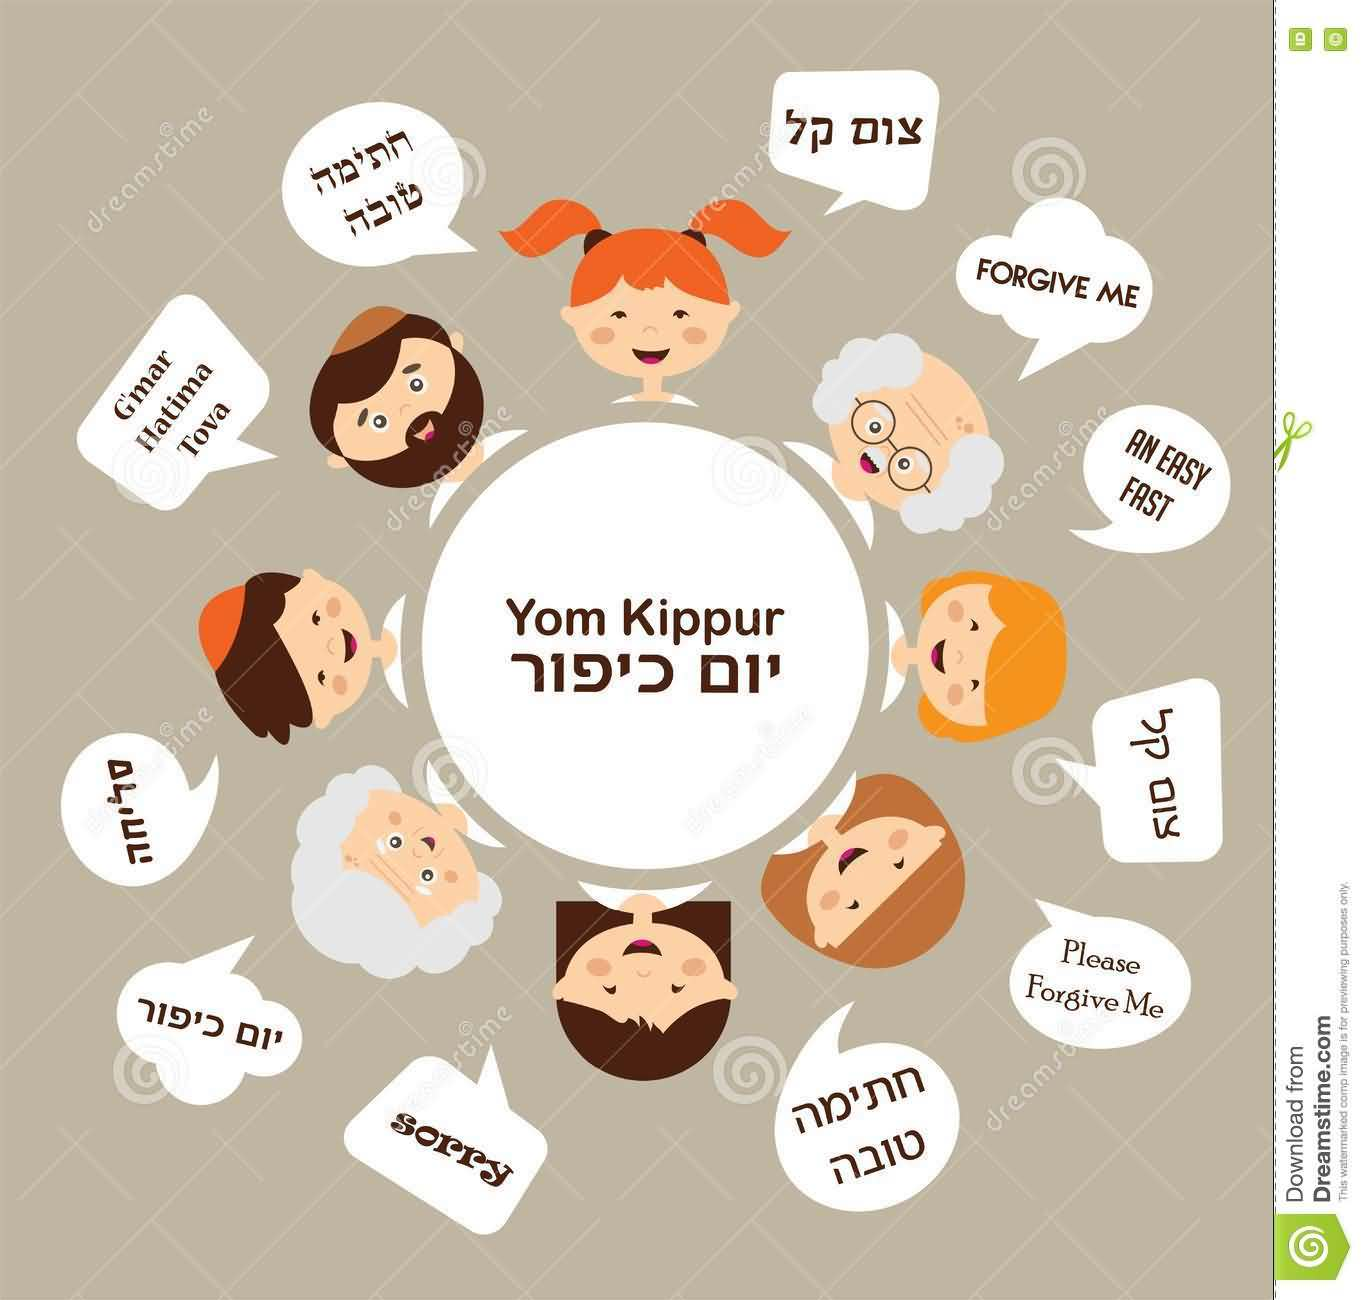 50 Best Yom Kippur 2017 Wishes Ideas On Askideas